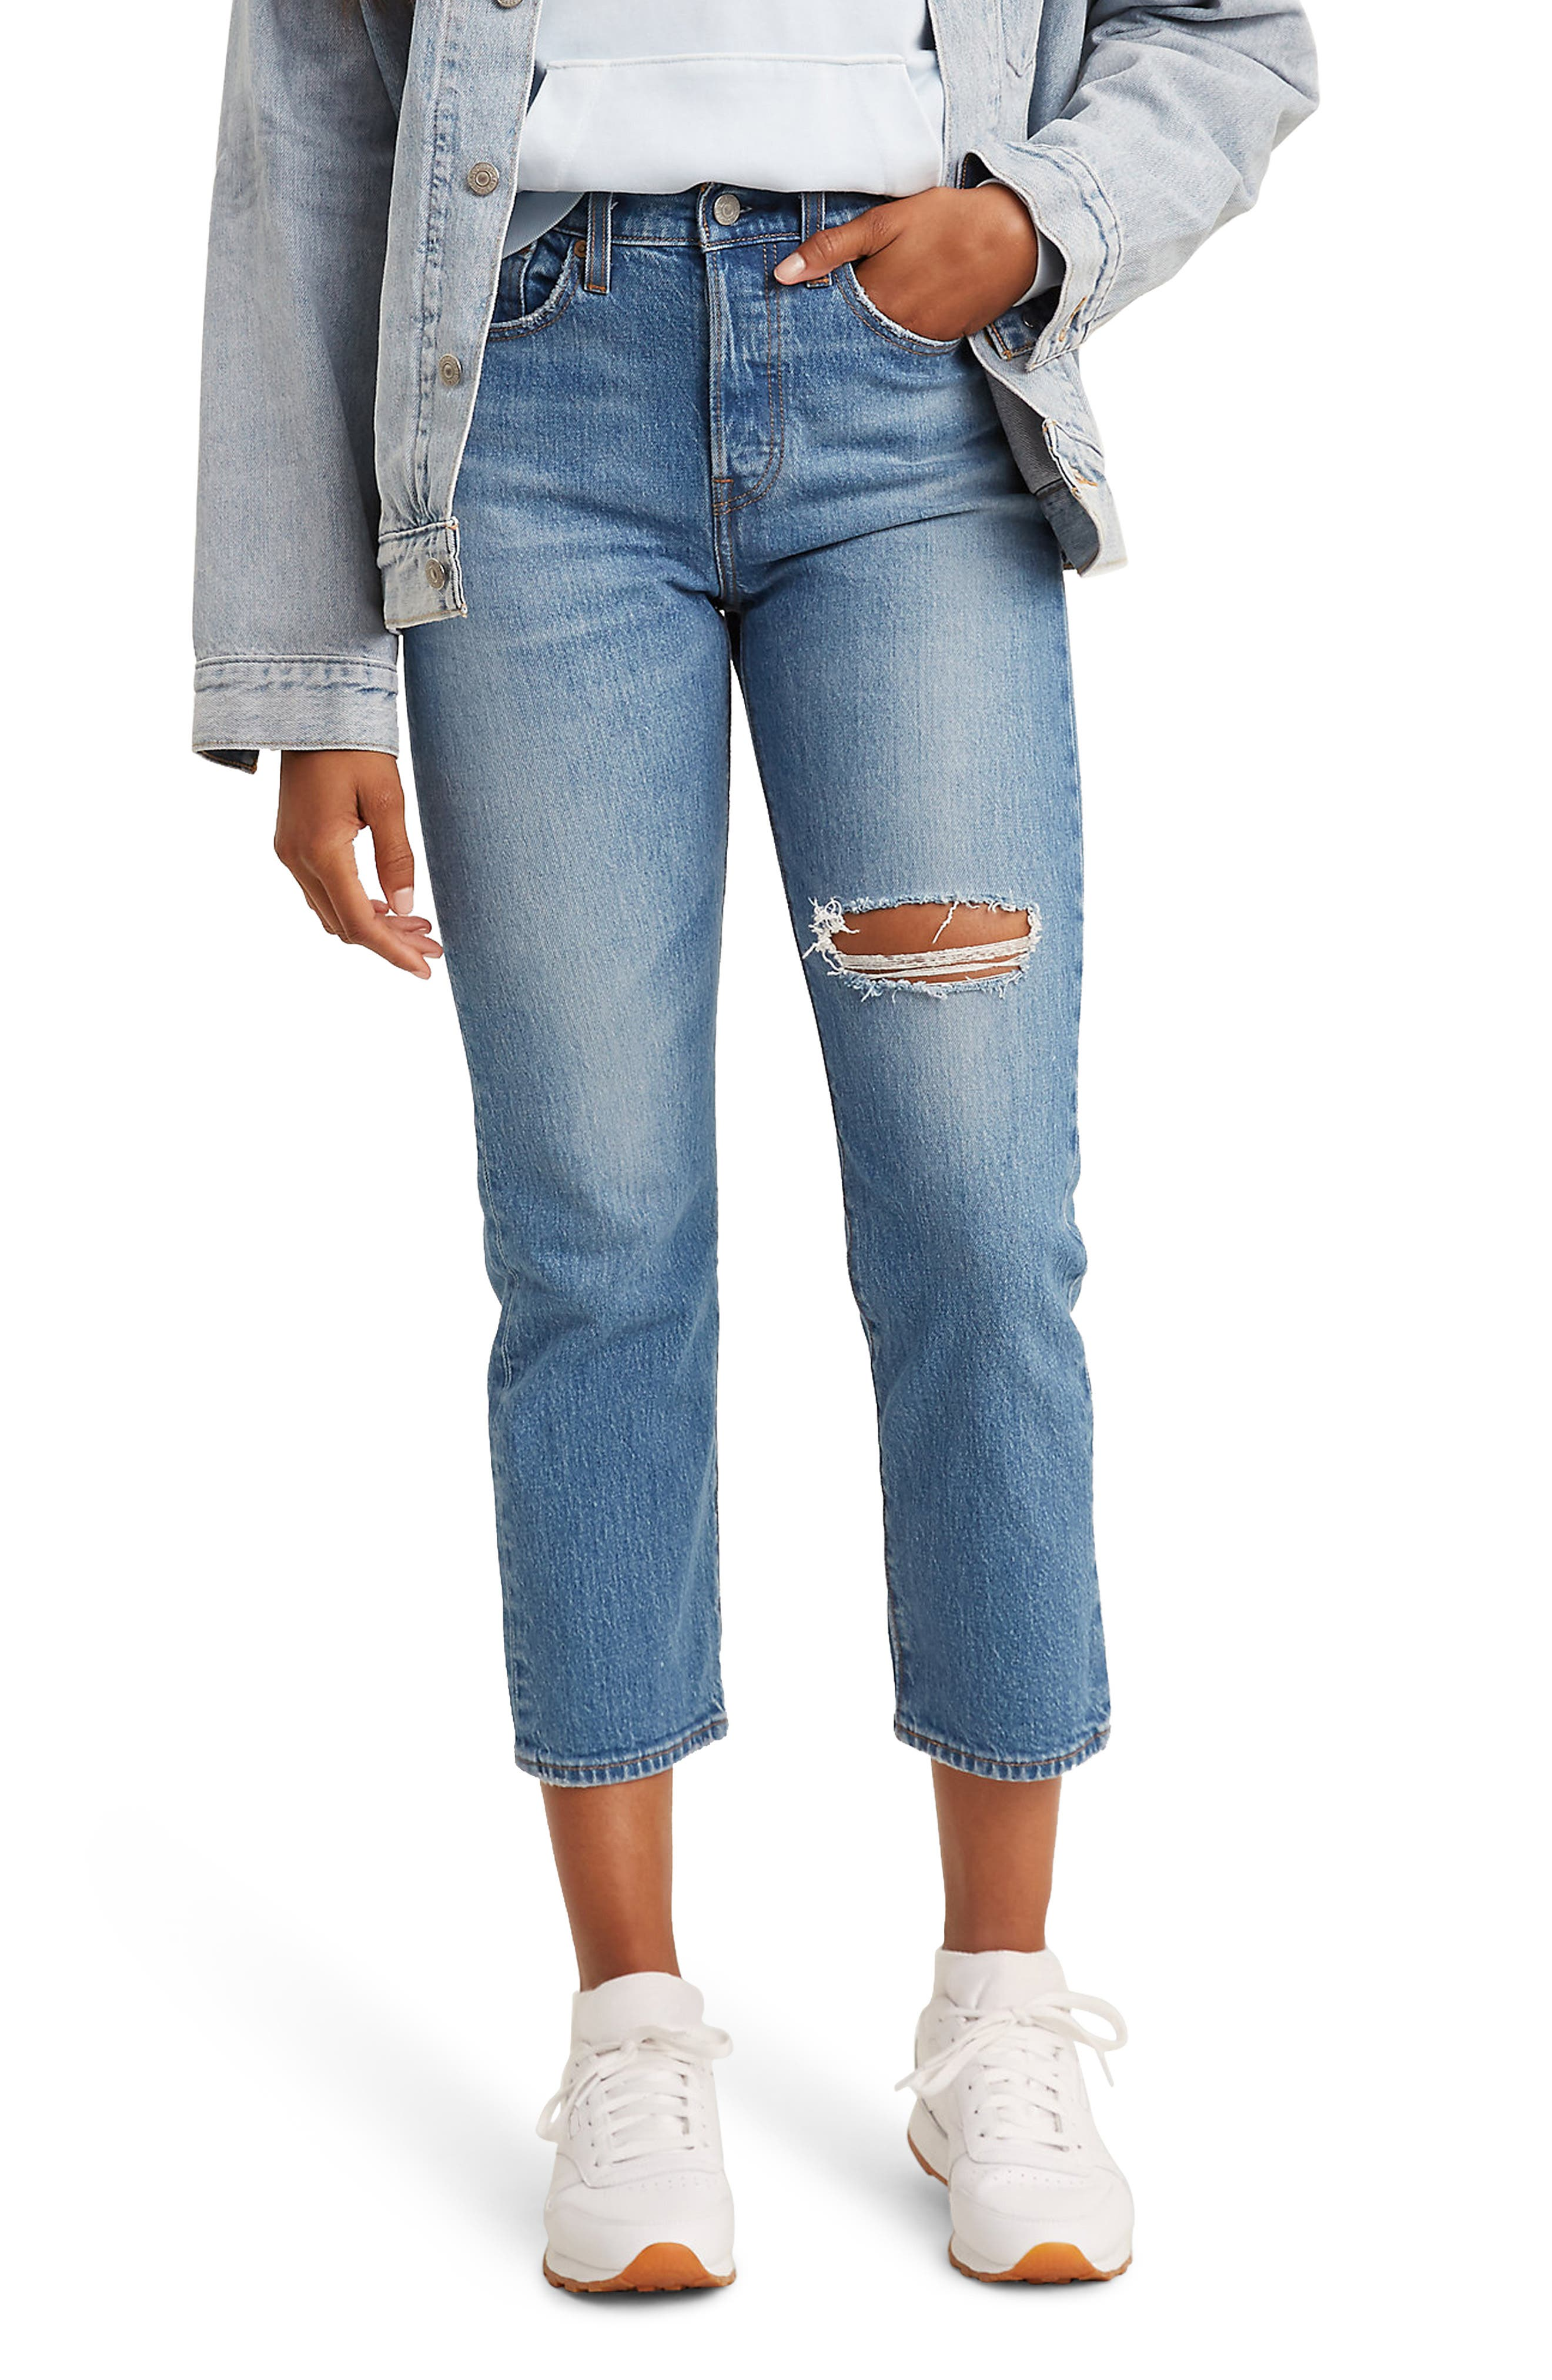 Levi's® Wedgie High Waist Straight Leg Ankle Jeans (Jive Tone) | Nordstrom